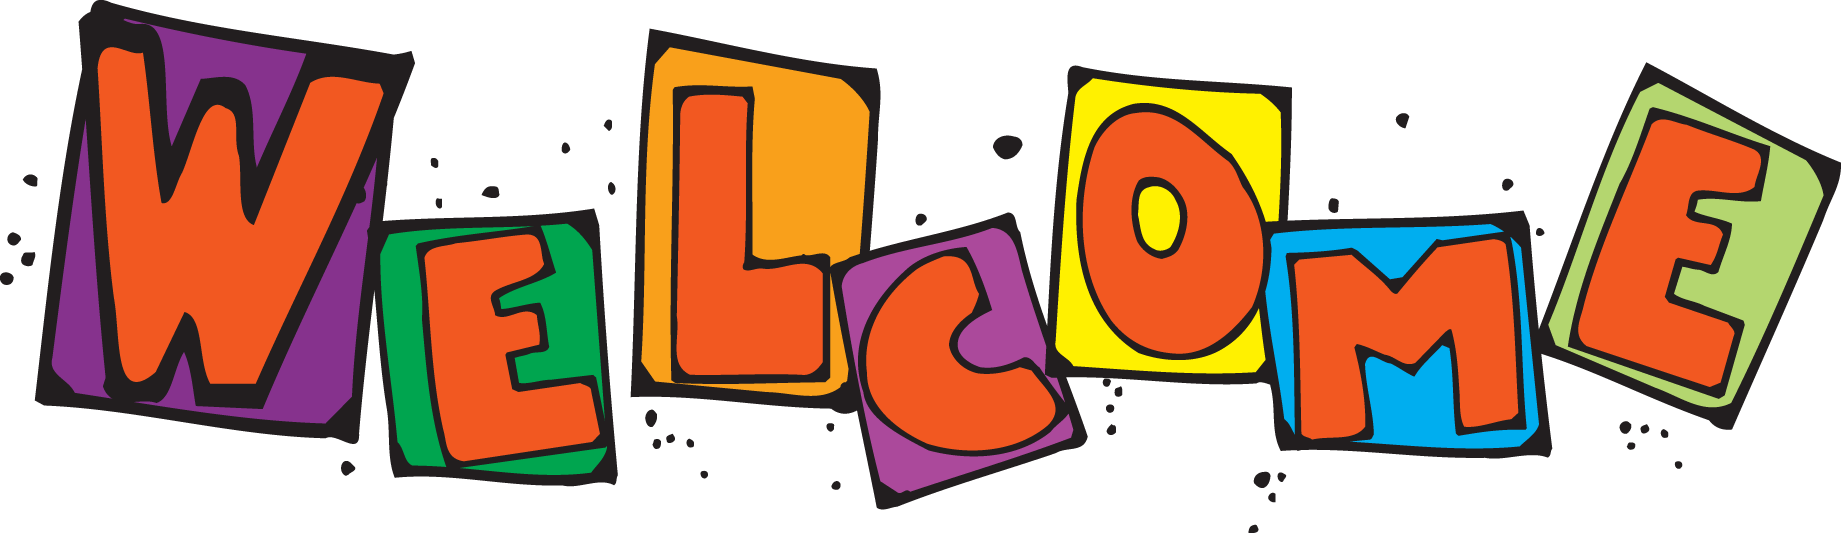 Welcome Clipart Animated.